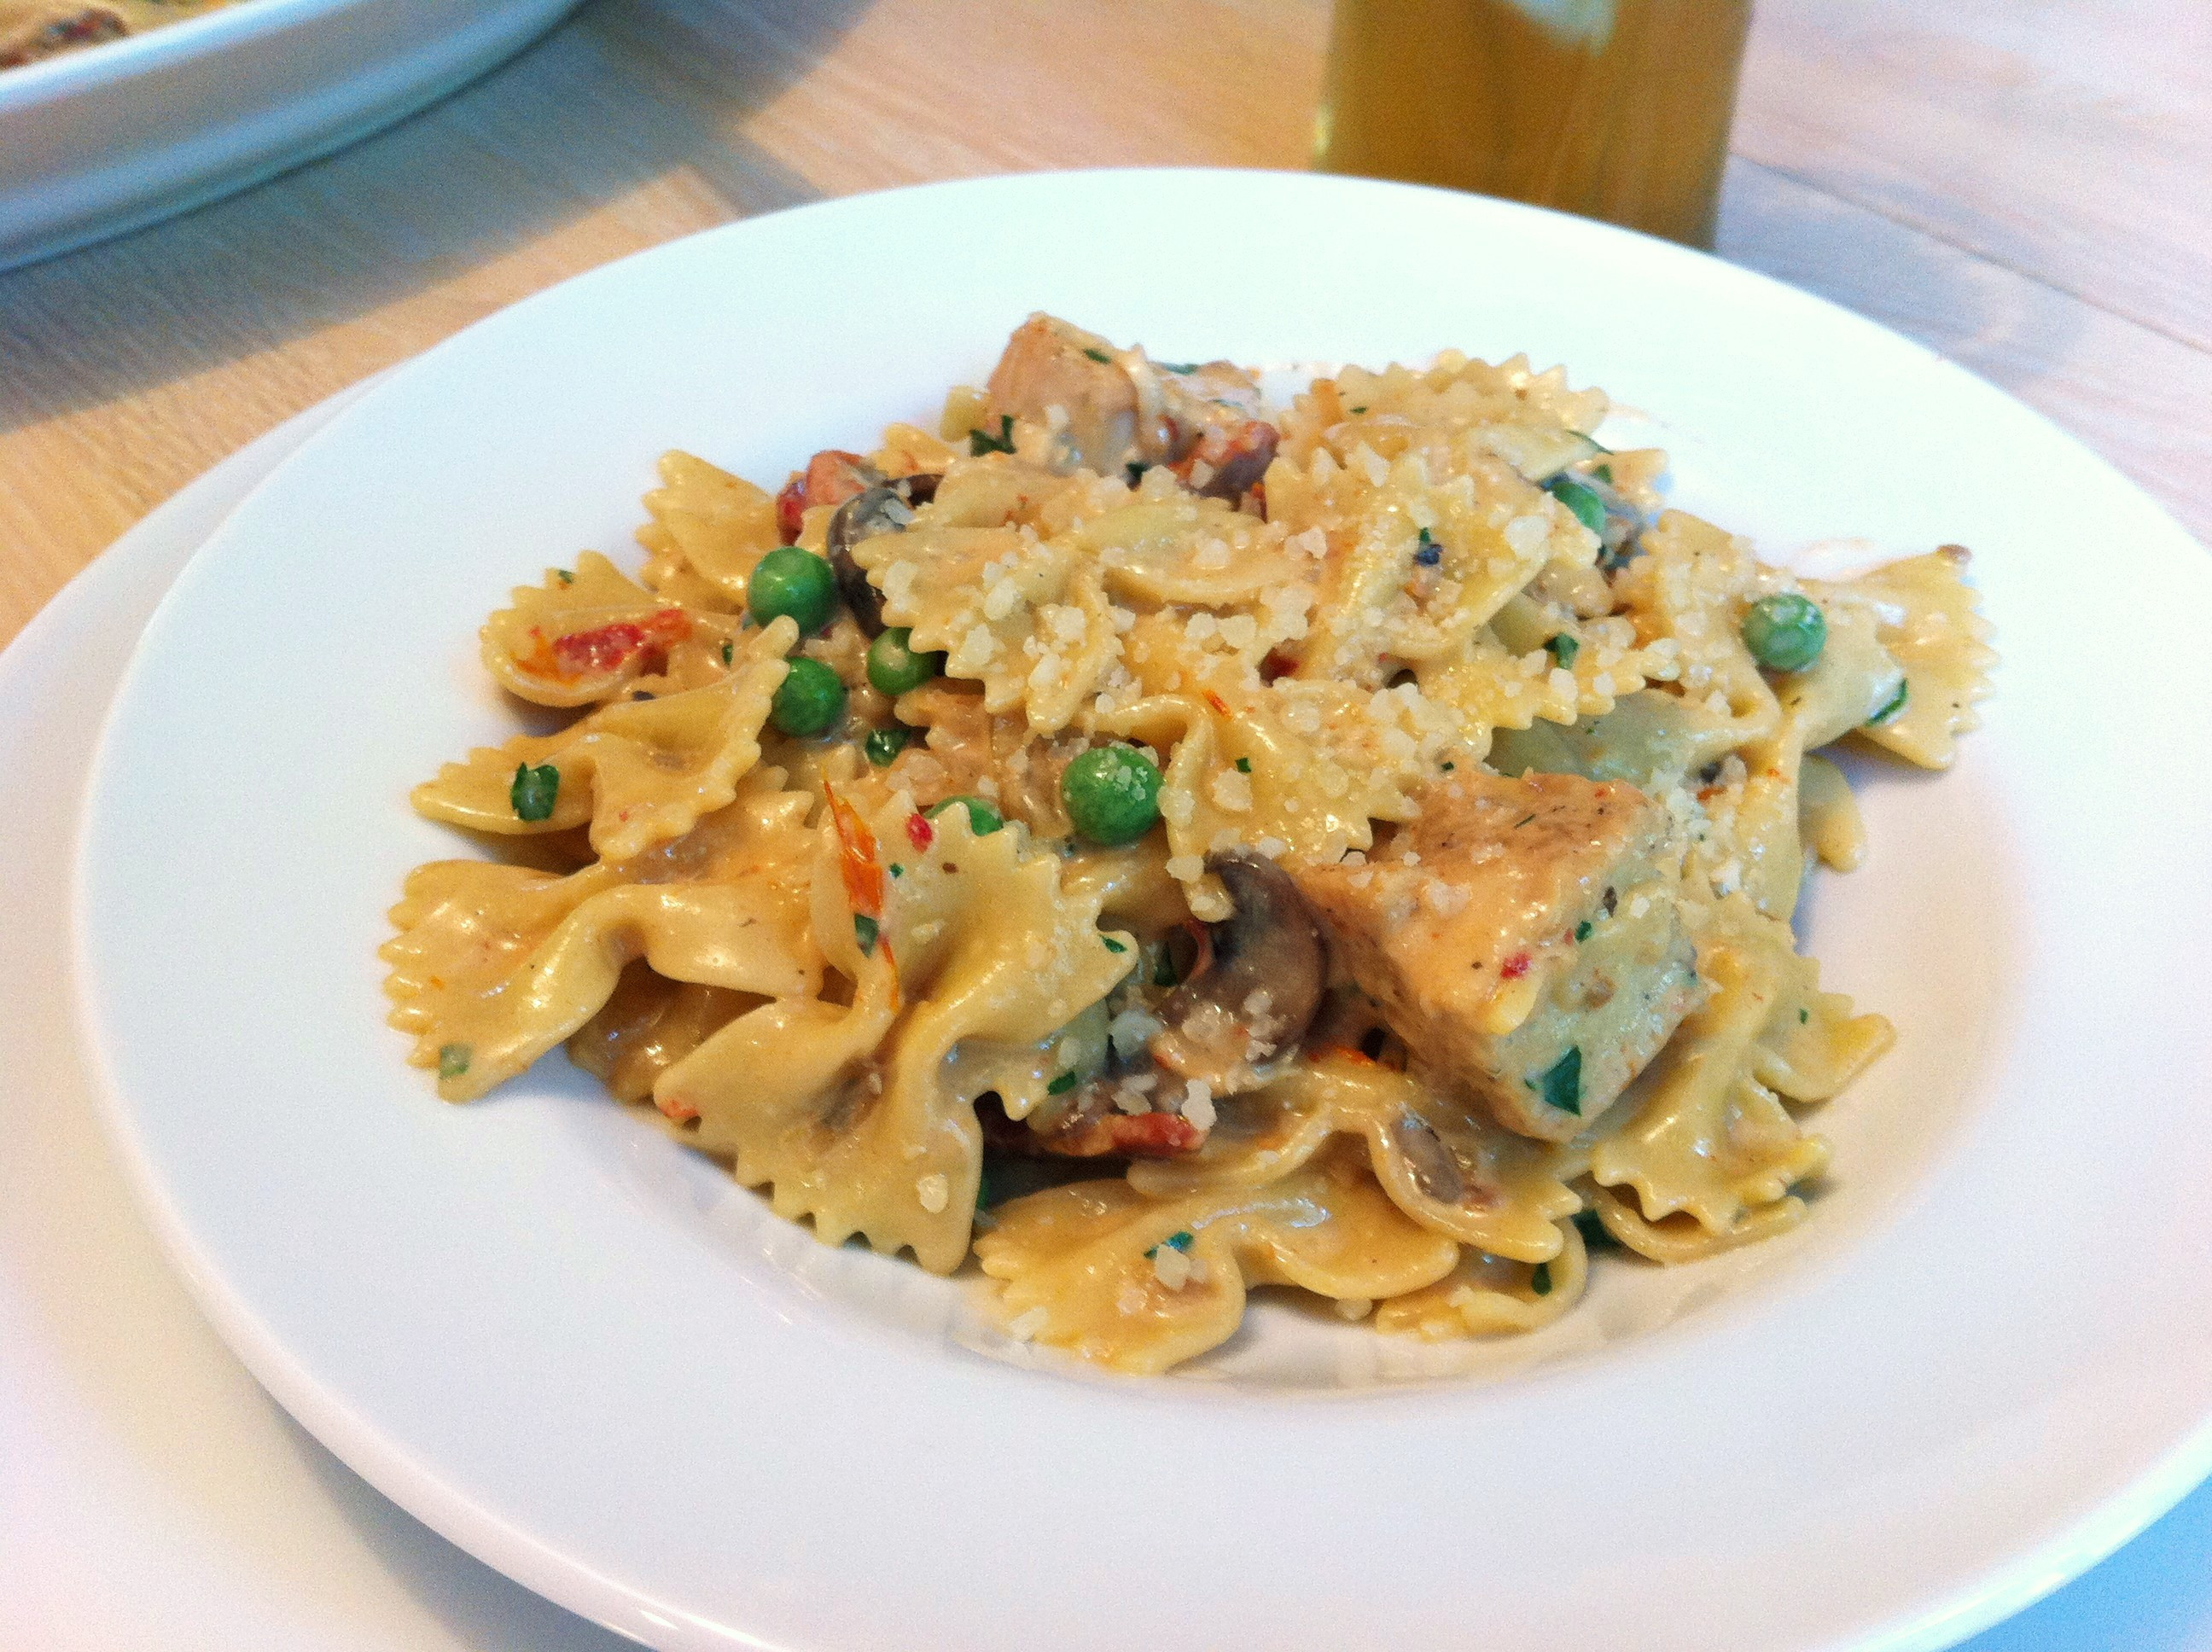 Cheesecake Factory Farfalle With Chicken And Roasted Garlic  Chicken and Farfalle Pasta in a Roasted Garlic Cream Sauce